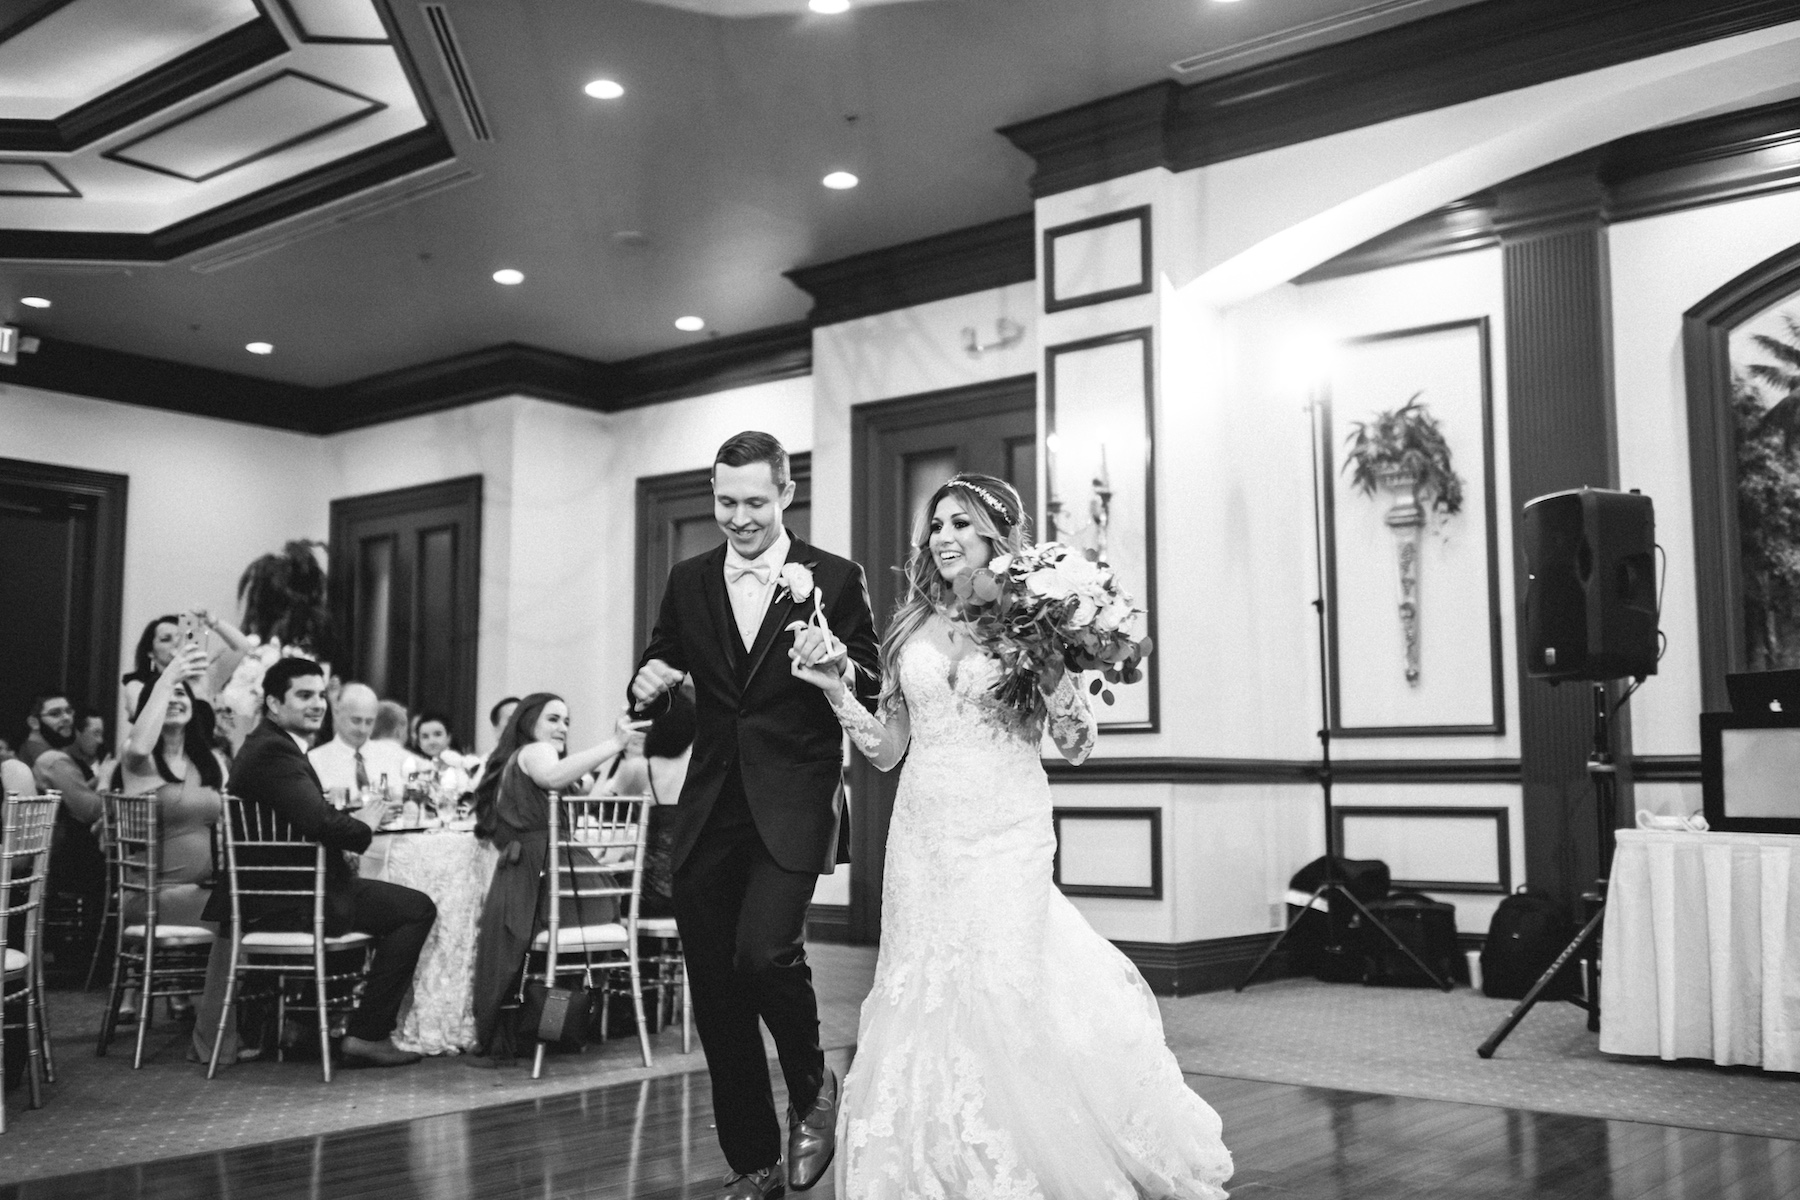 Wedding Reception Photography Matt Steeves The Club at the Strand in Naples Florida.jpg